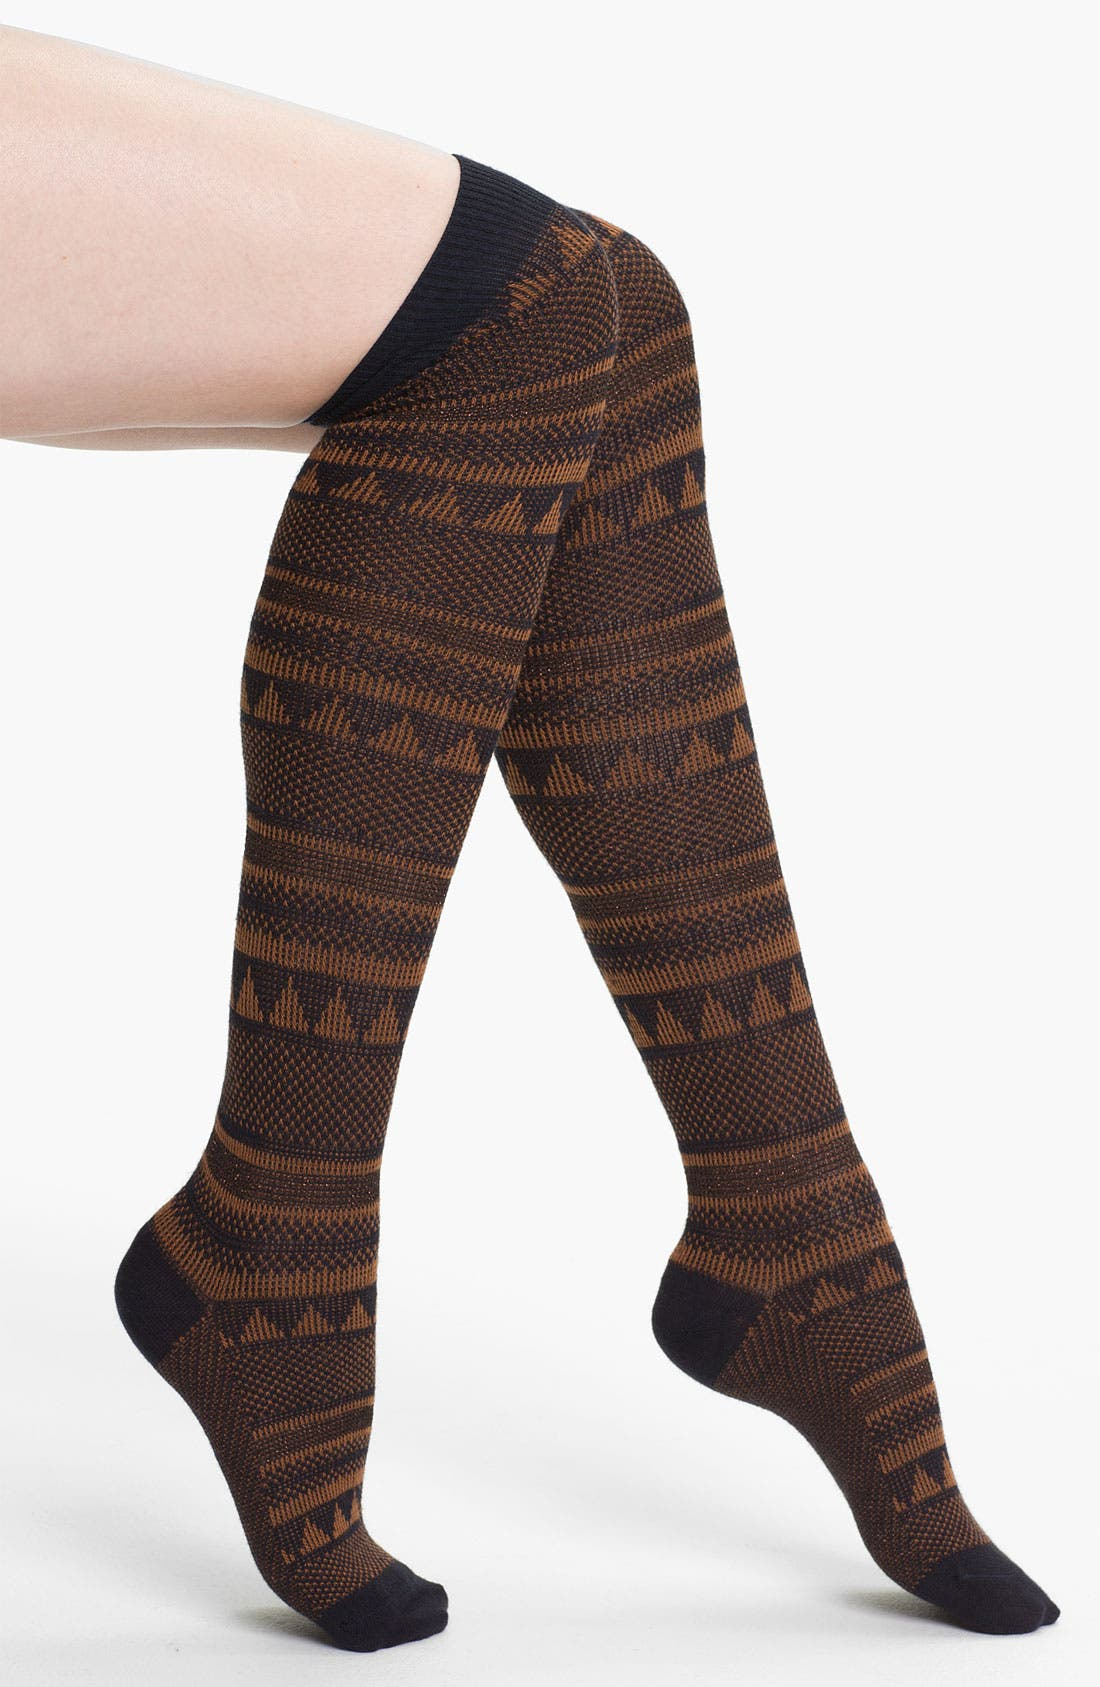 Main Image - Free People 'Peaks & Valleys' Over the Knee Socks